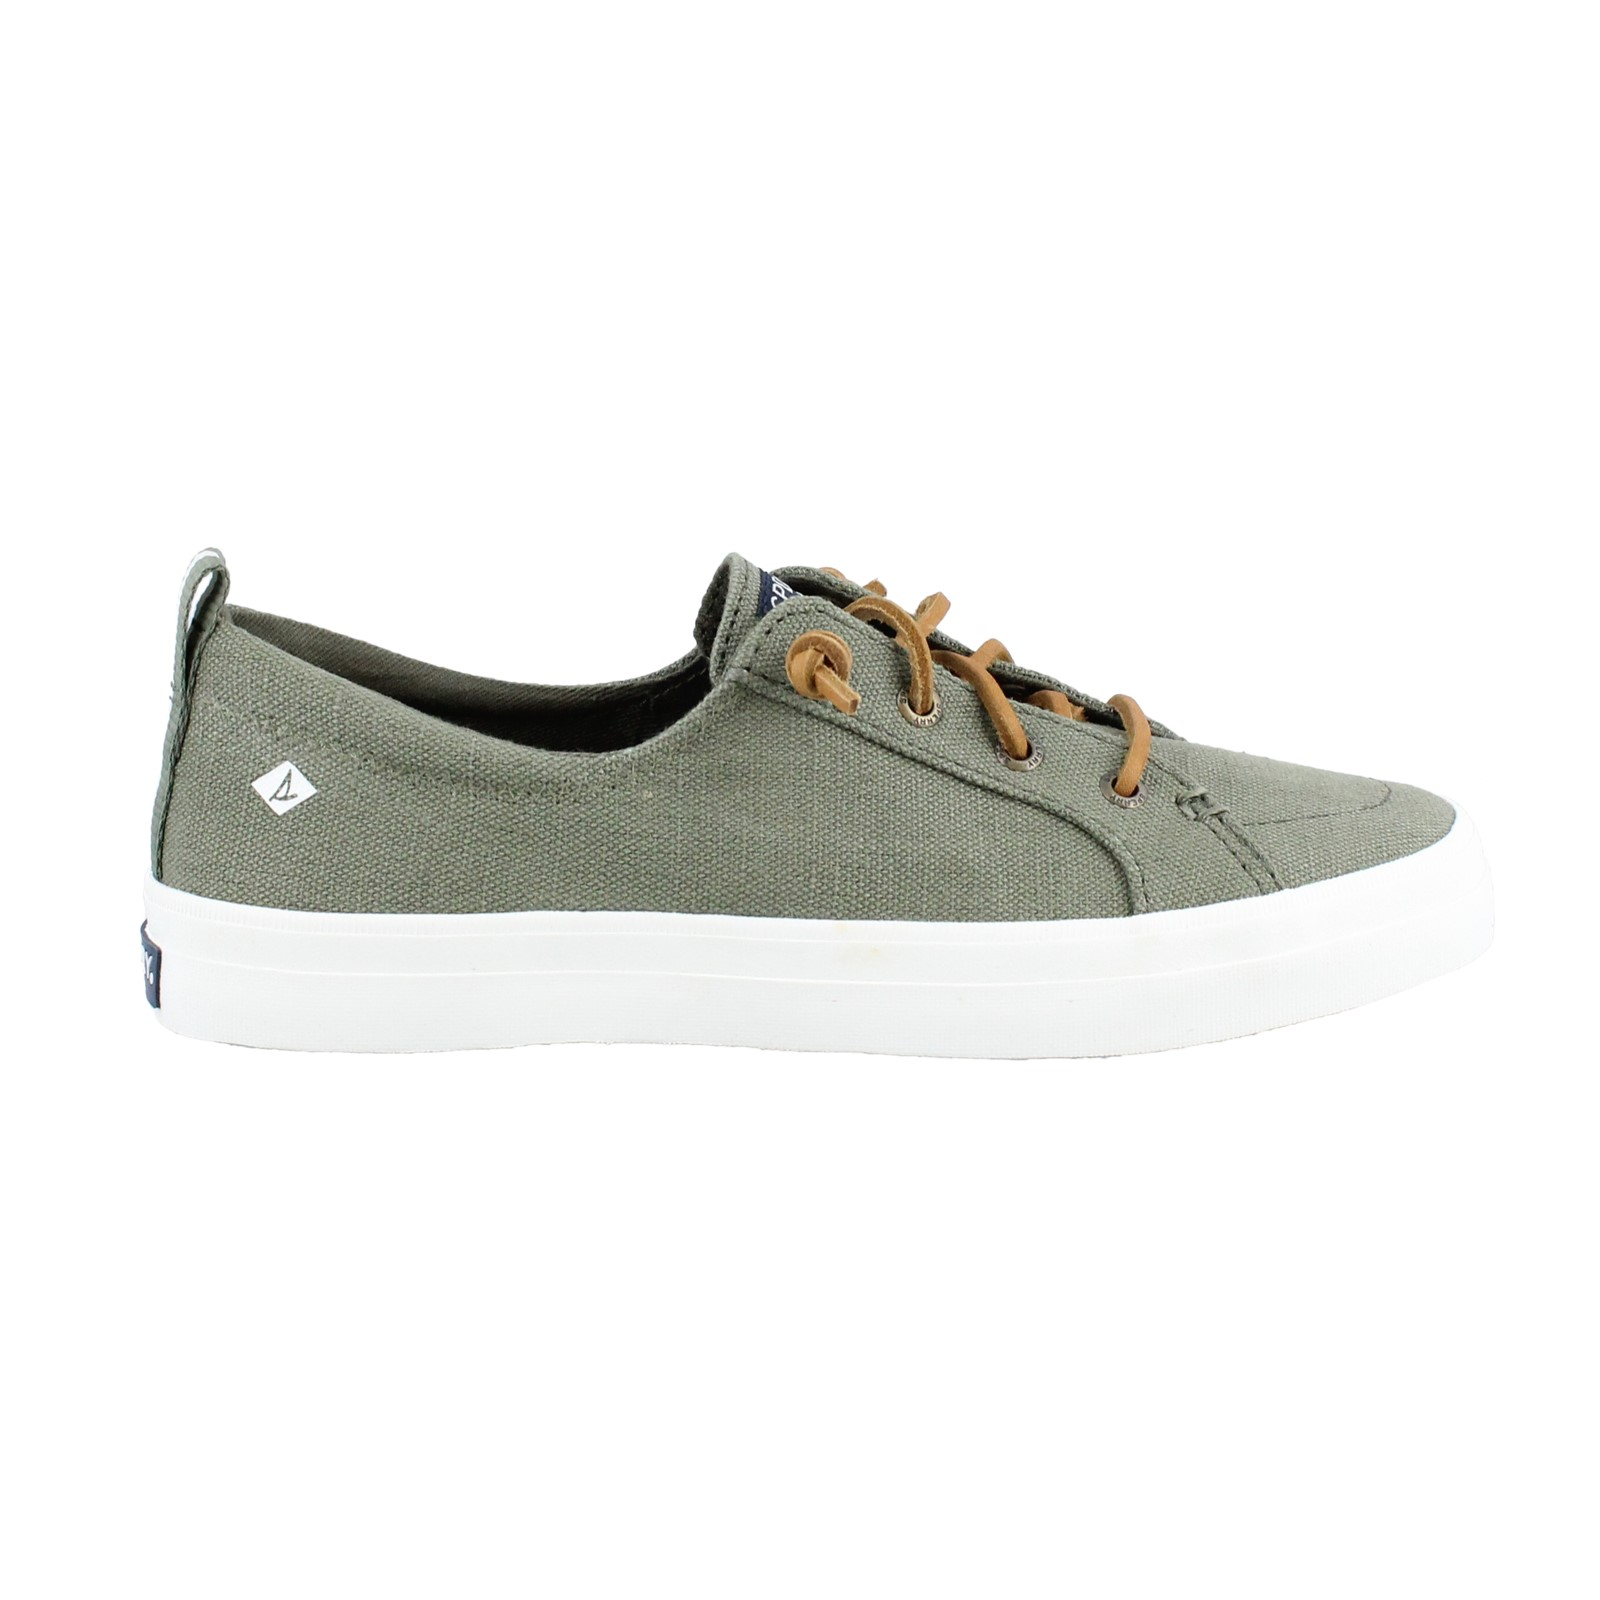 Women's Sperry, Crest Vibe Slip on Shoes